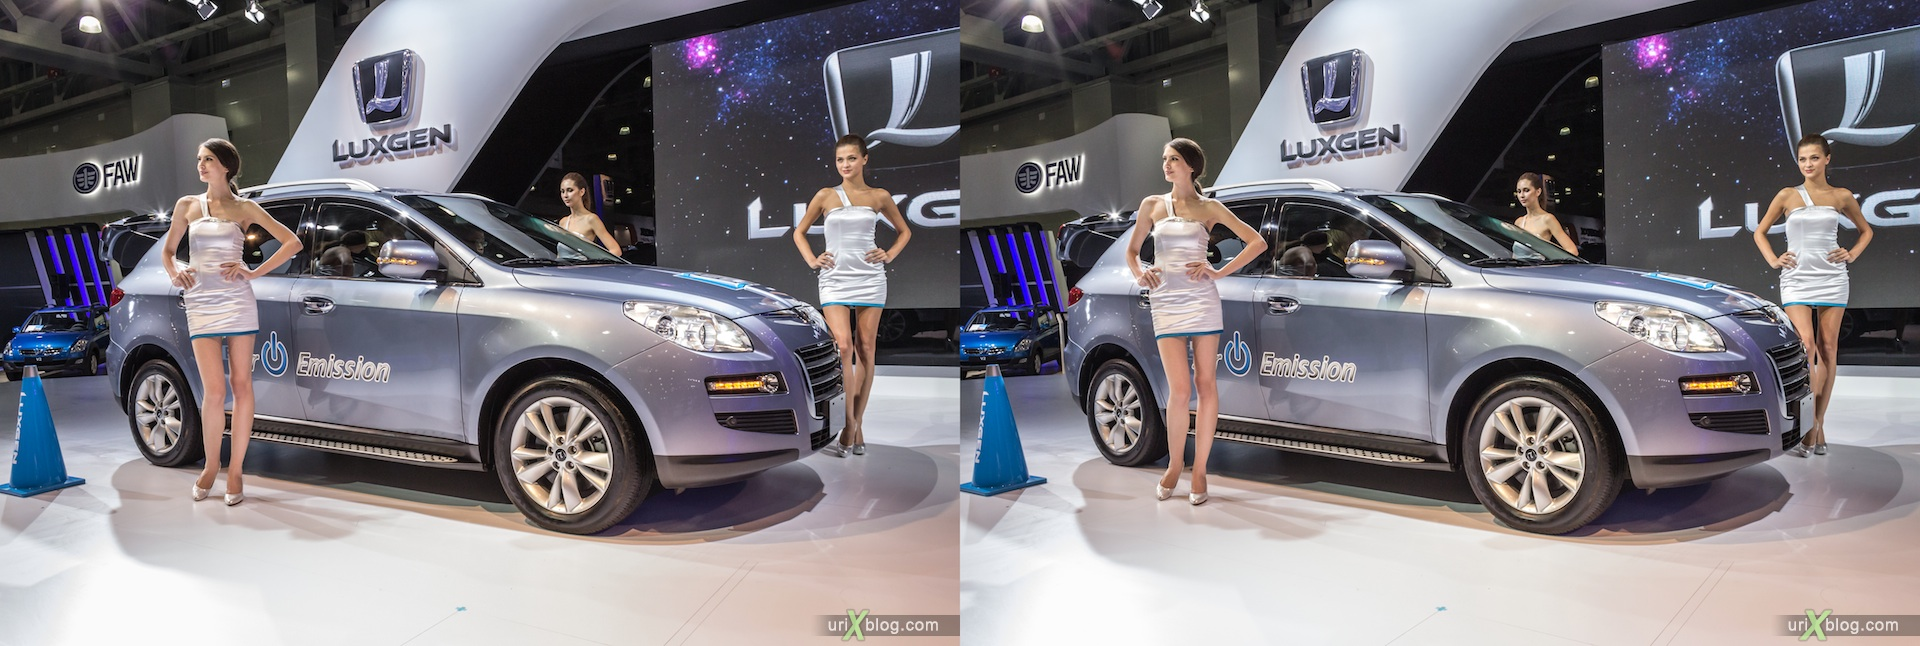 2012, Luxgen E, girl, model, Moscow International Automobile Salon, auto show, 3D, stereo pair, cross-eyed, crossview